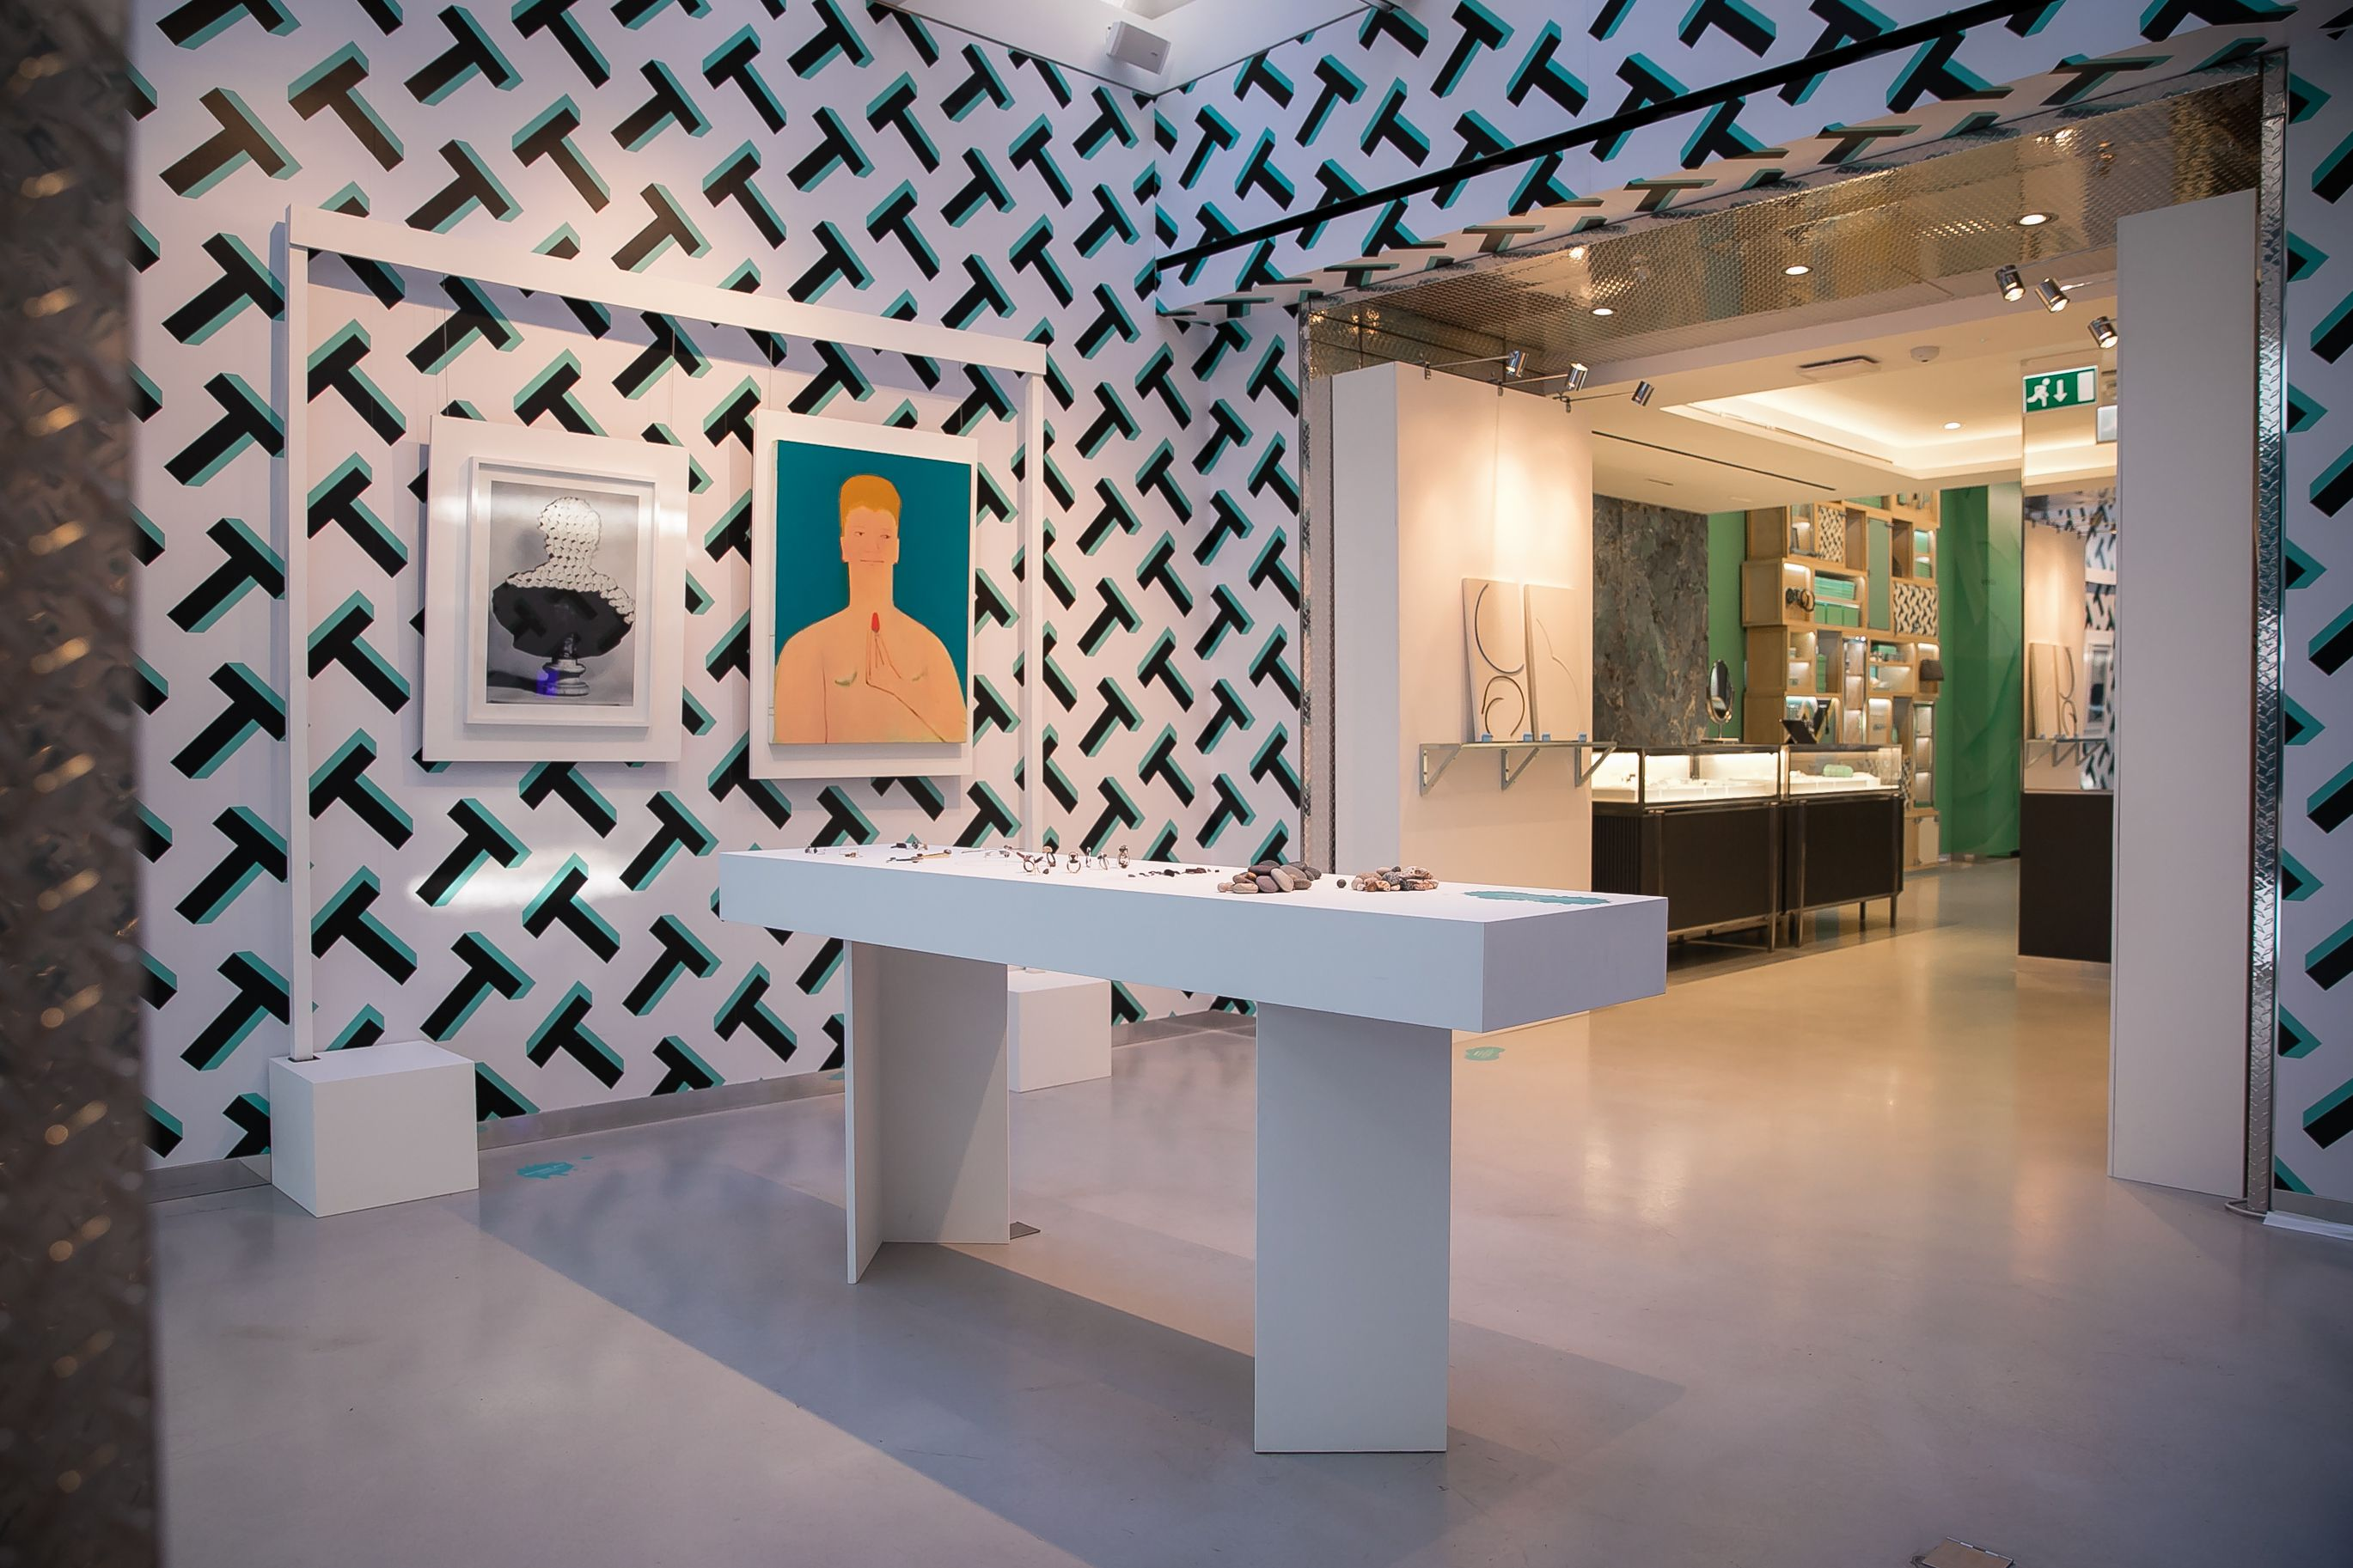 d341ccb97 Tiffany & Co hosts a free art exhibition